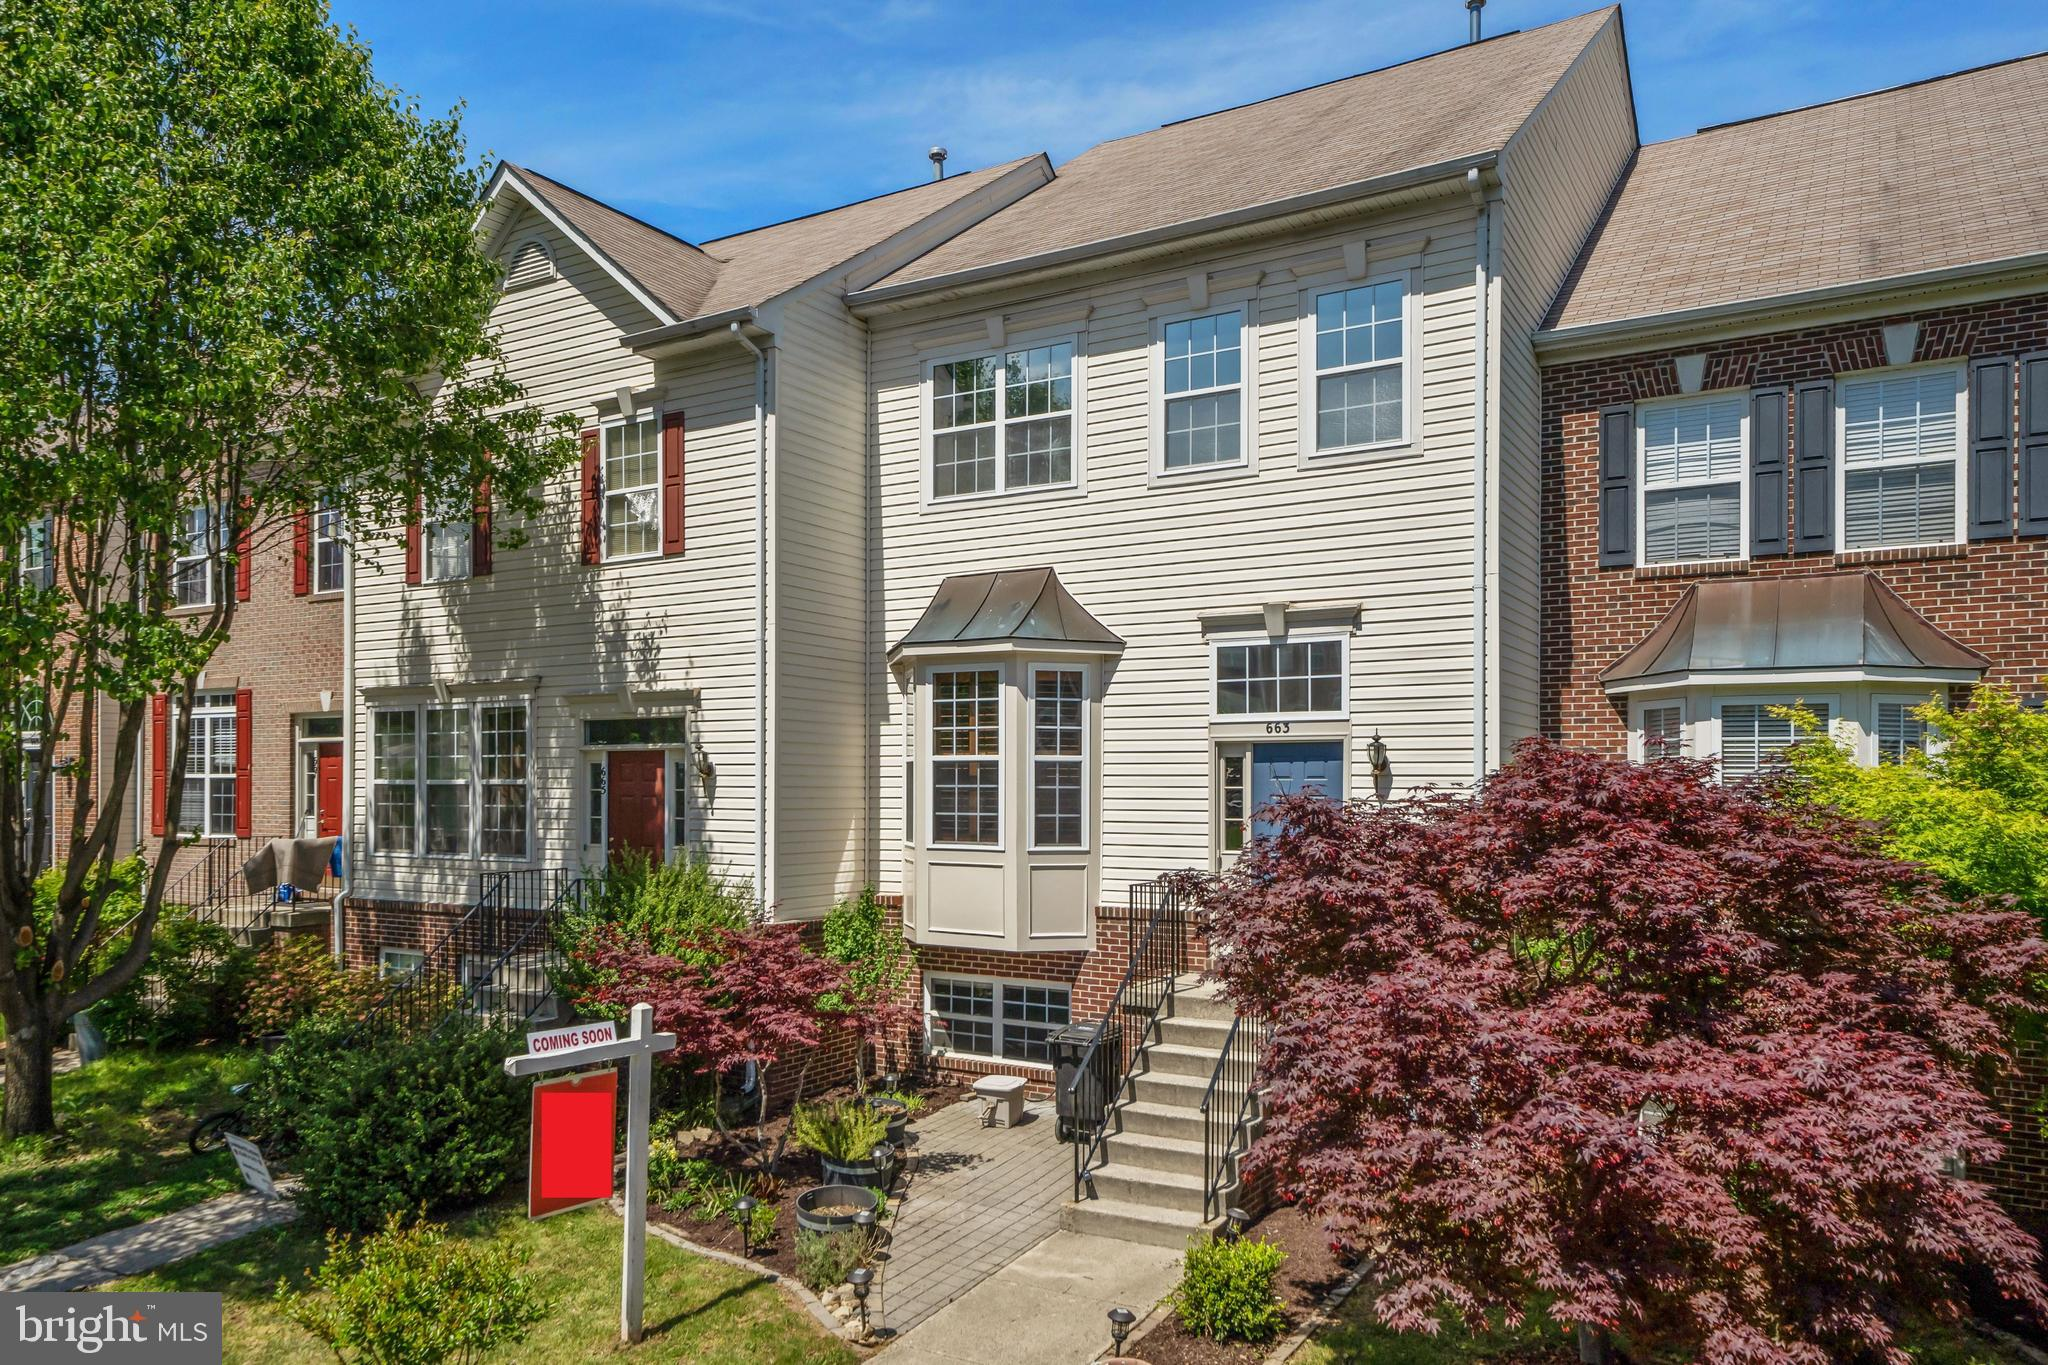 Beautiful 3 level townhome in Tavistock Farms community of Leesburg.    Big open kitchen, dining, and living areas on the main floor.  The kitchen has a huge pantry and more custom above-pantry storage.  Spacious basement rec room and a 4th bedroom with a full bathroom in the basement.  Lots of natural light throughout the entire home.  Deck off the kitchen leading down to the fully fenced backyard.  Giant primary suite on upper level with 2 secondary bedrooms and a hall bathroom.  New AC Unit April 2019, New Fridge July 2016, New Laminate Wood Flooring on Main  Floor and basement September 2016.   This is a great community with a pool, a new playground, lots of paths and an active social committee.